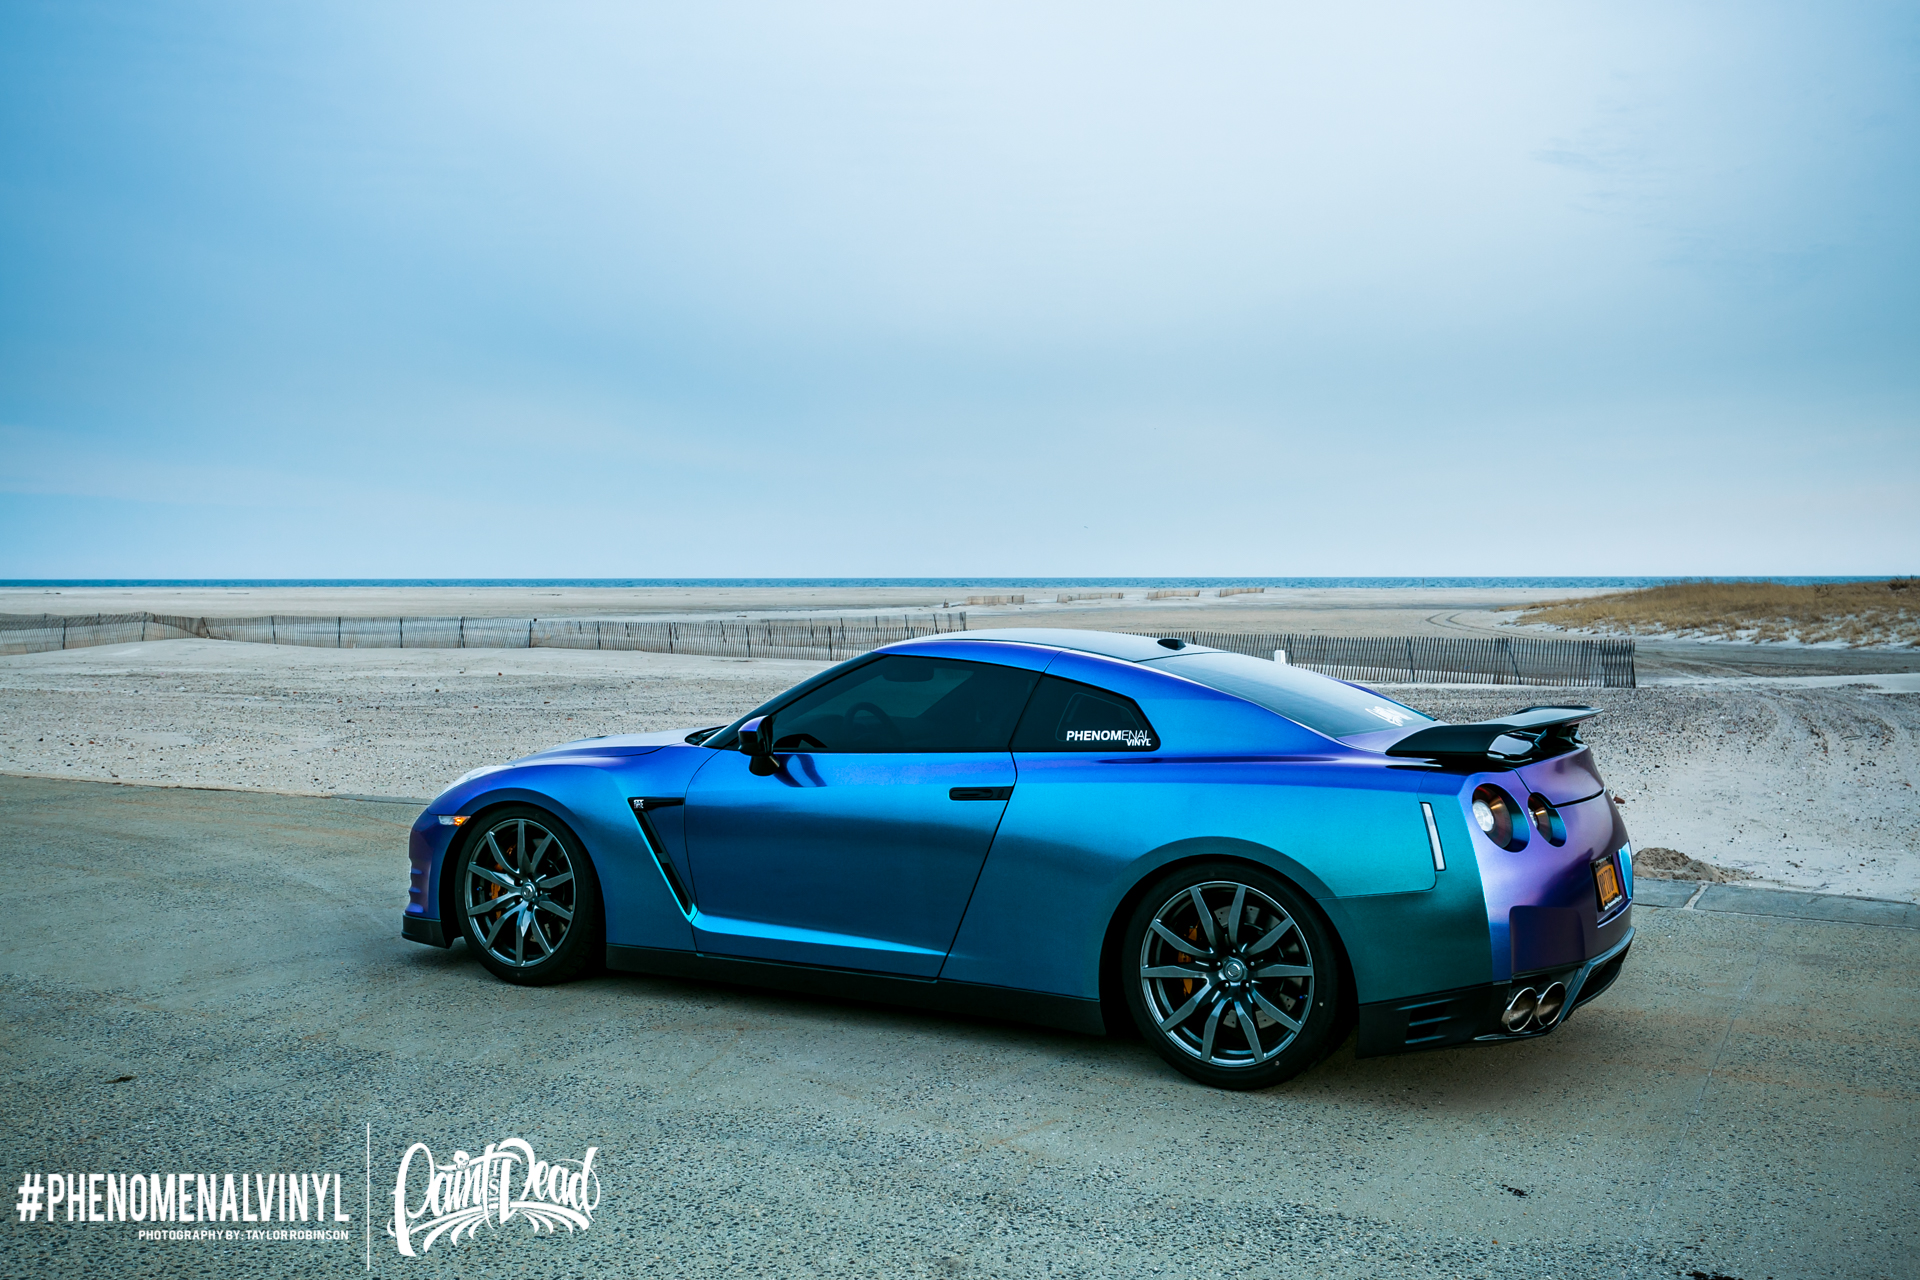 gtr beach shoot 2